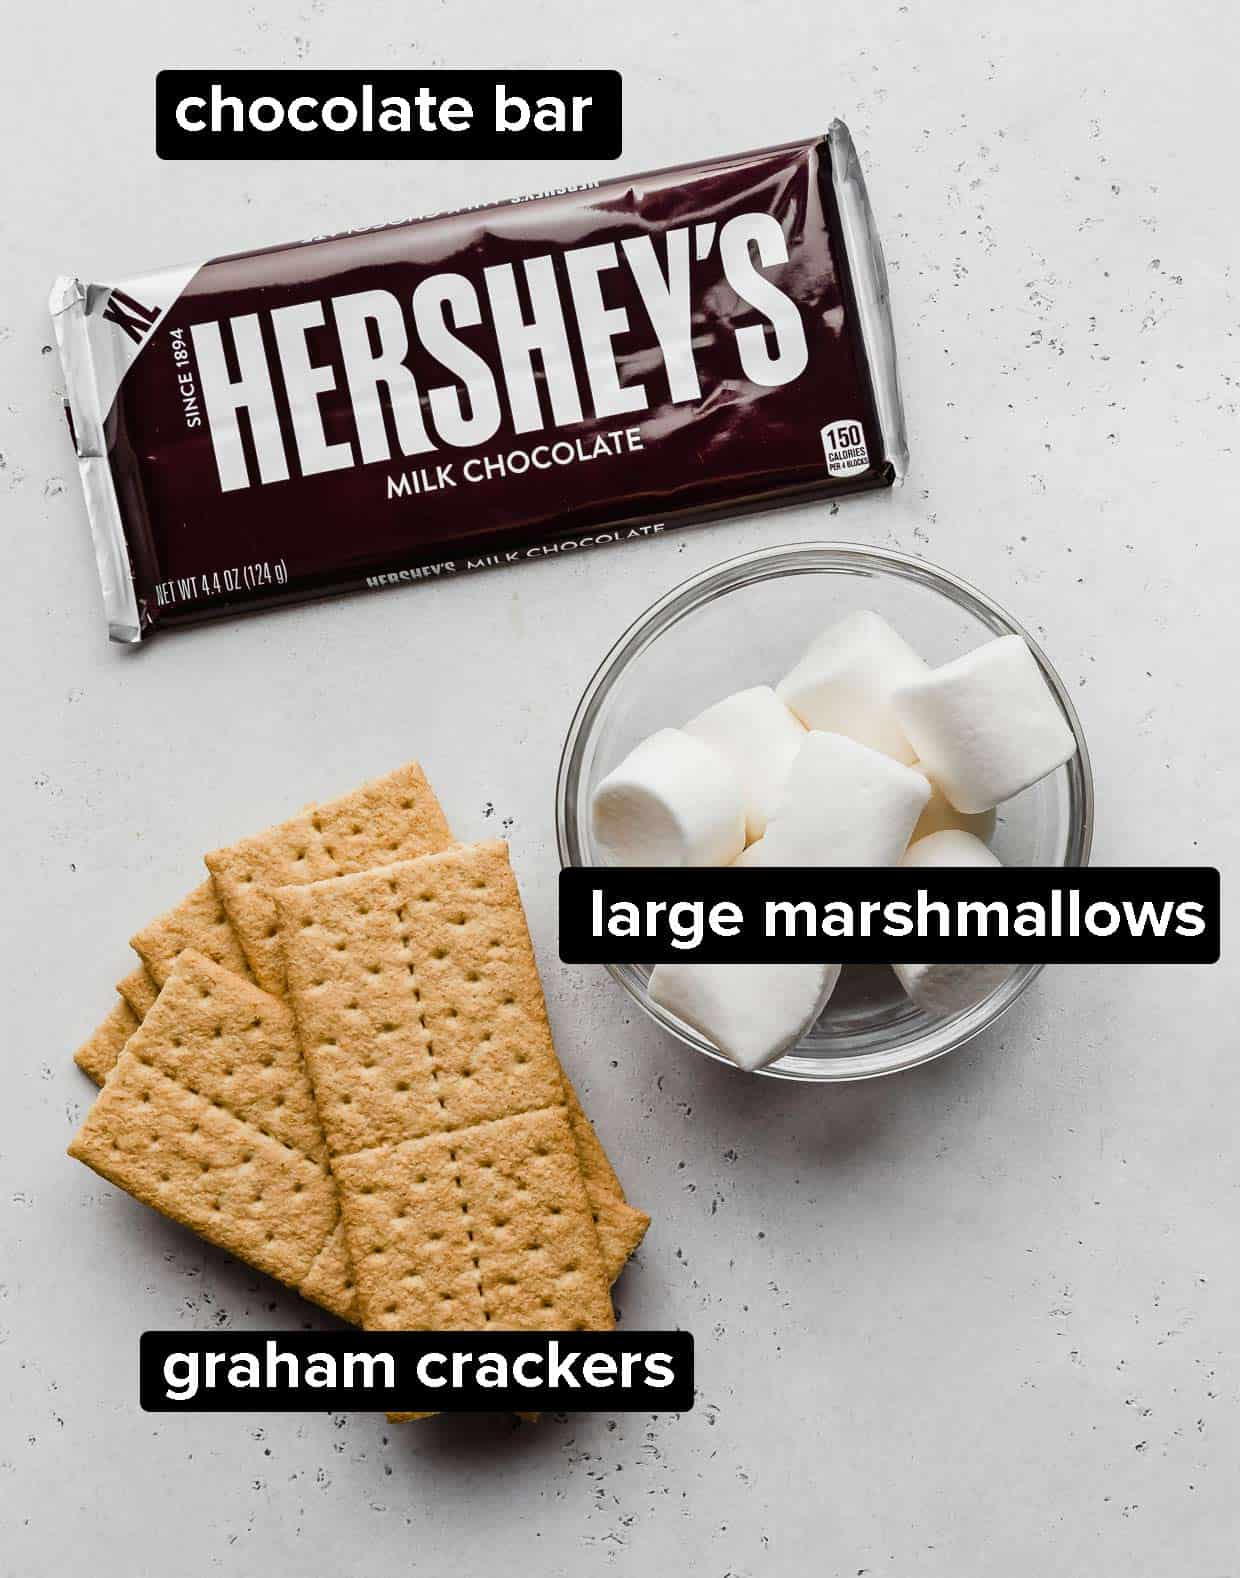 Ingredients used to make oven s'mores: graham cracker, marshmallow, chocolate.